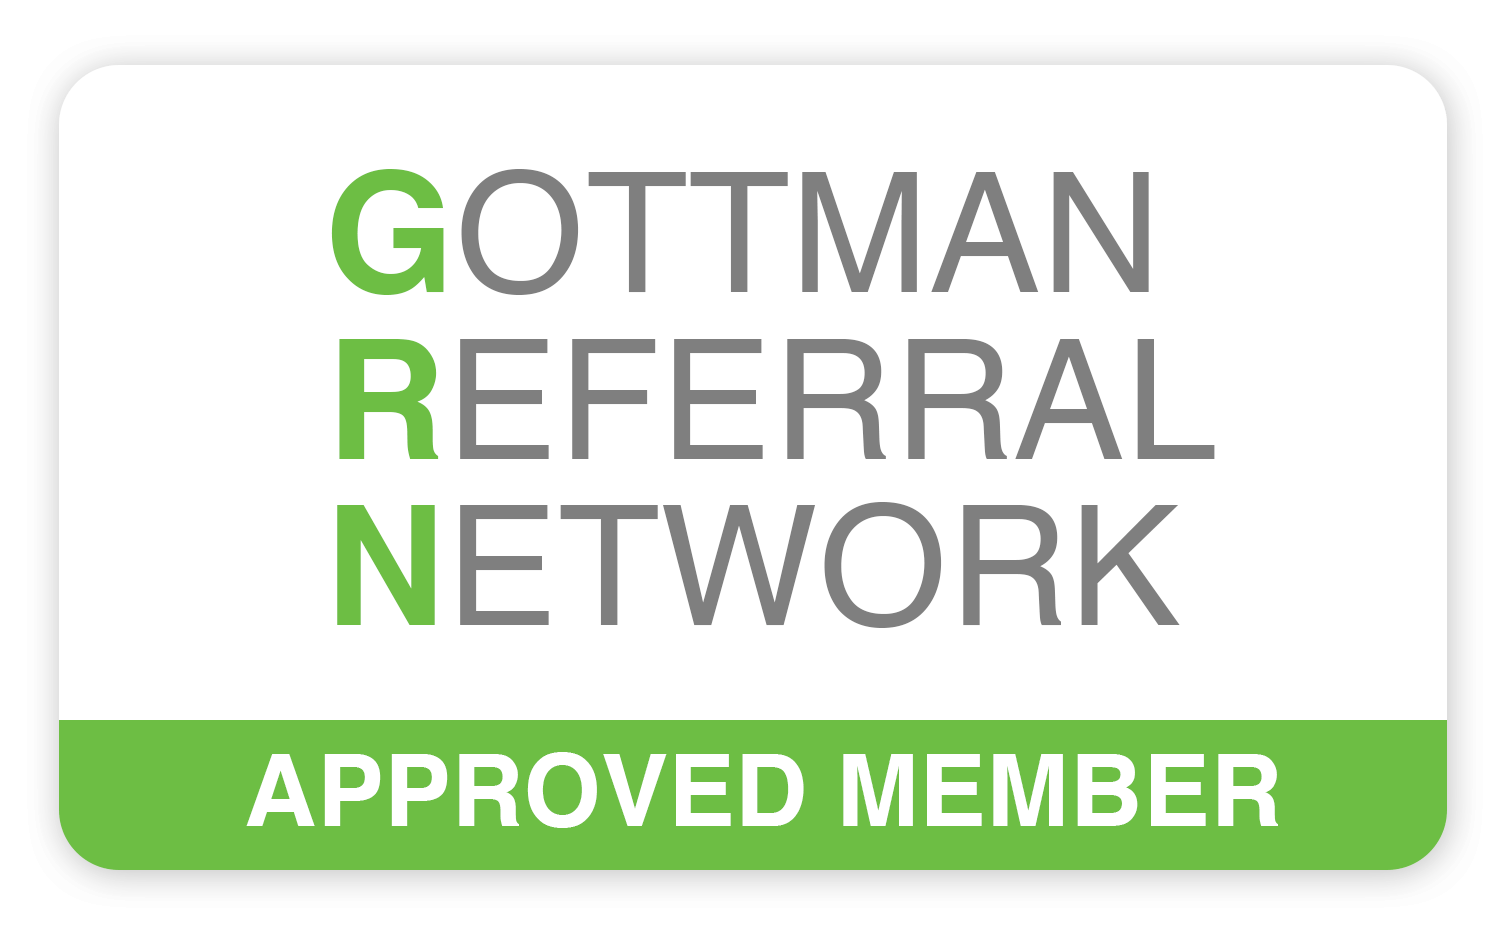 Leslie Baughman's profile on the Gottman Referral Network